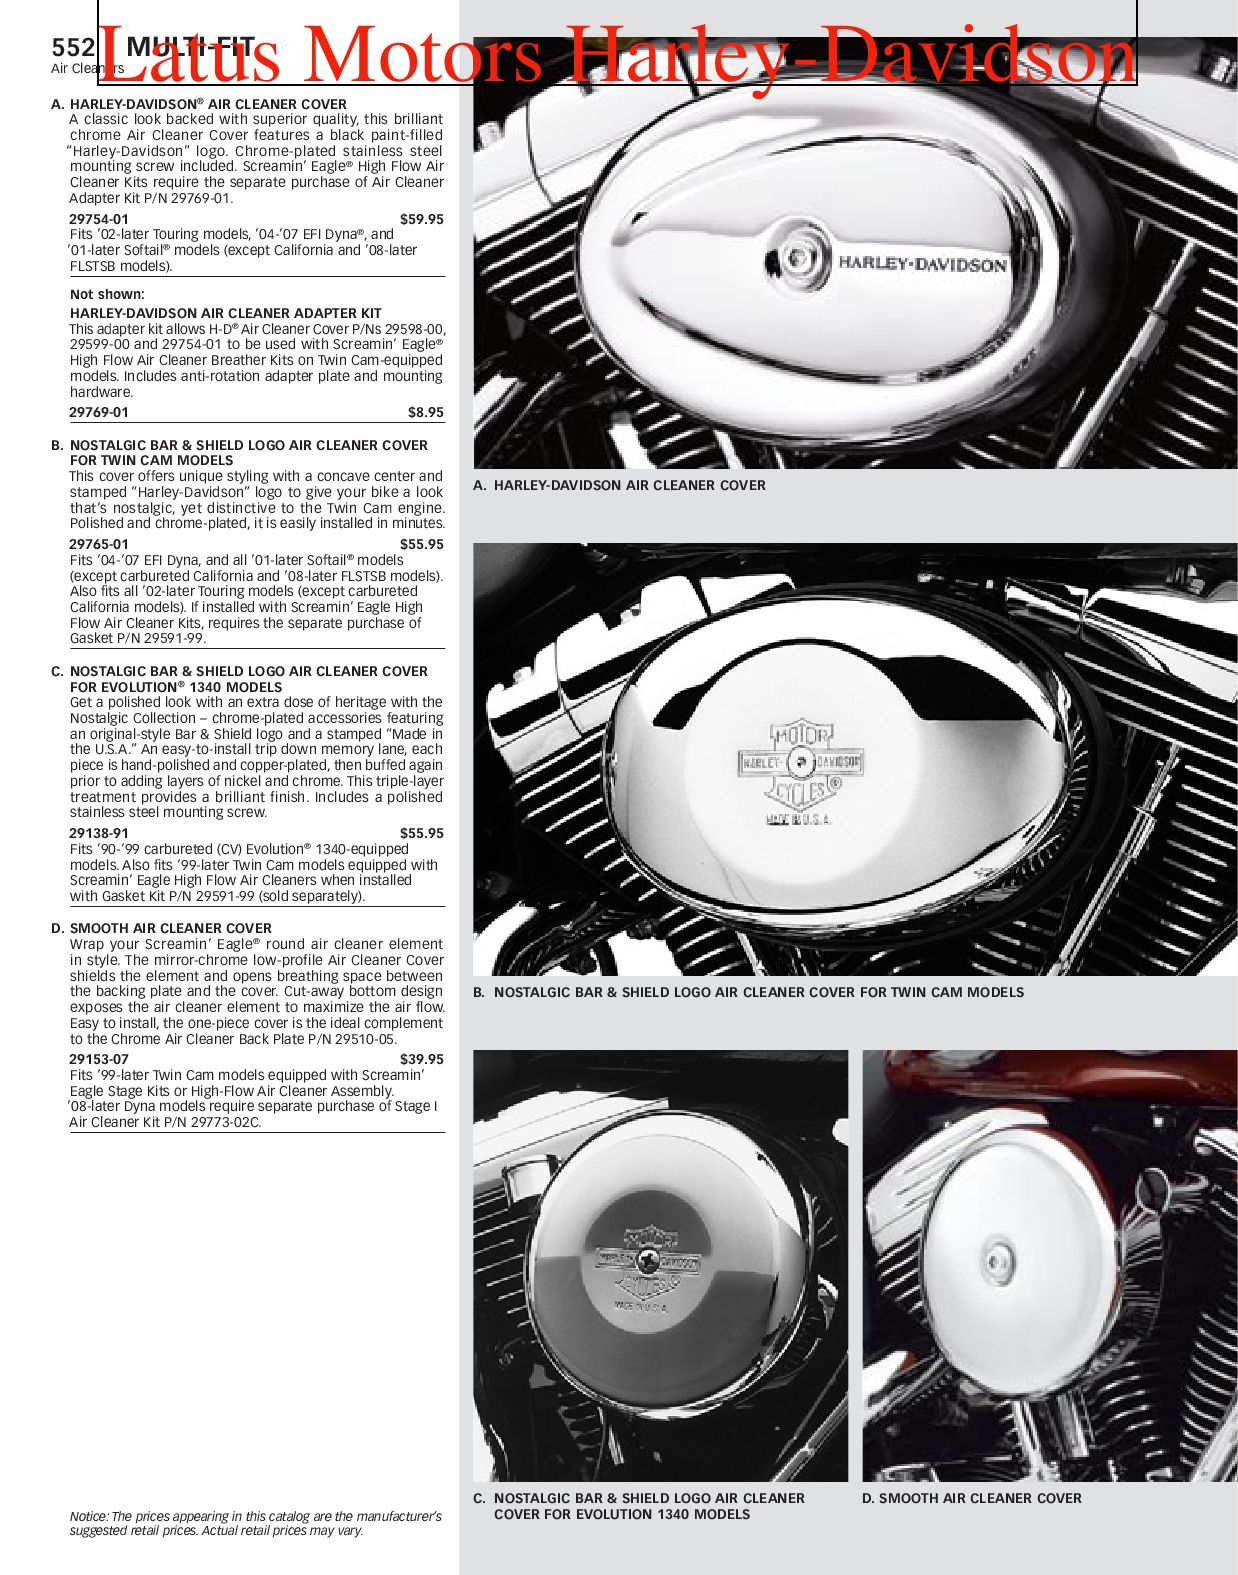 Harley Davidson Parts And Accessories Catalog Dyna Paint